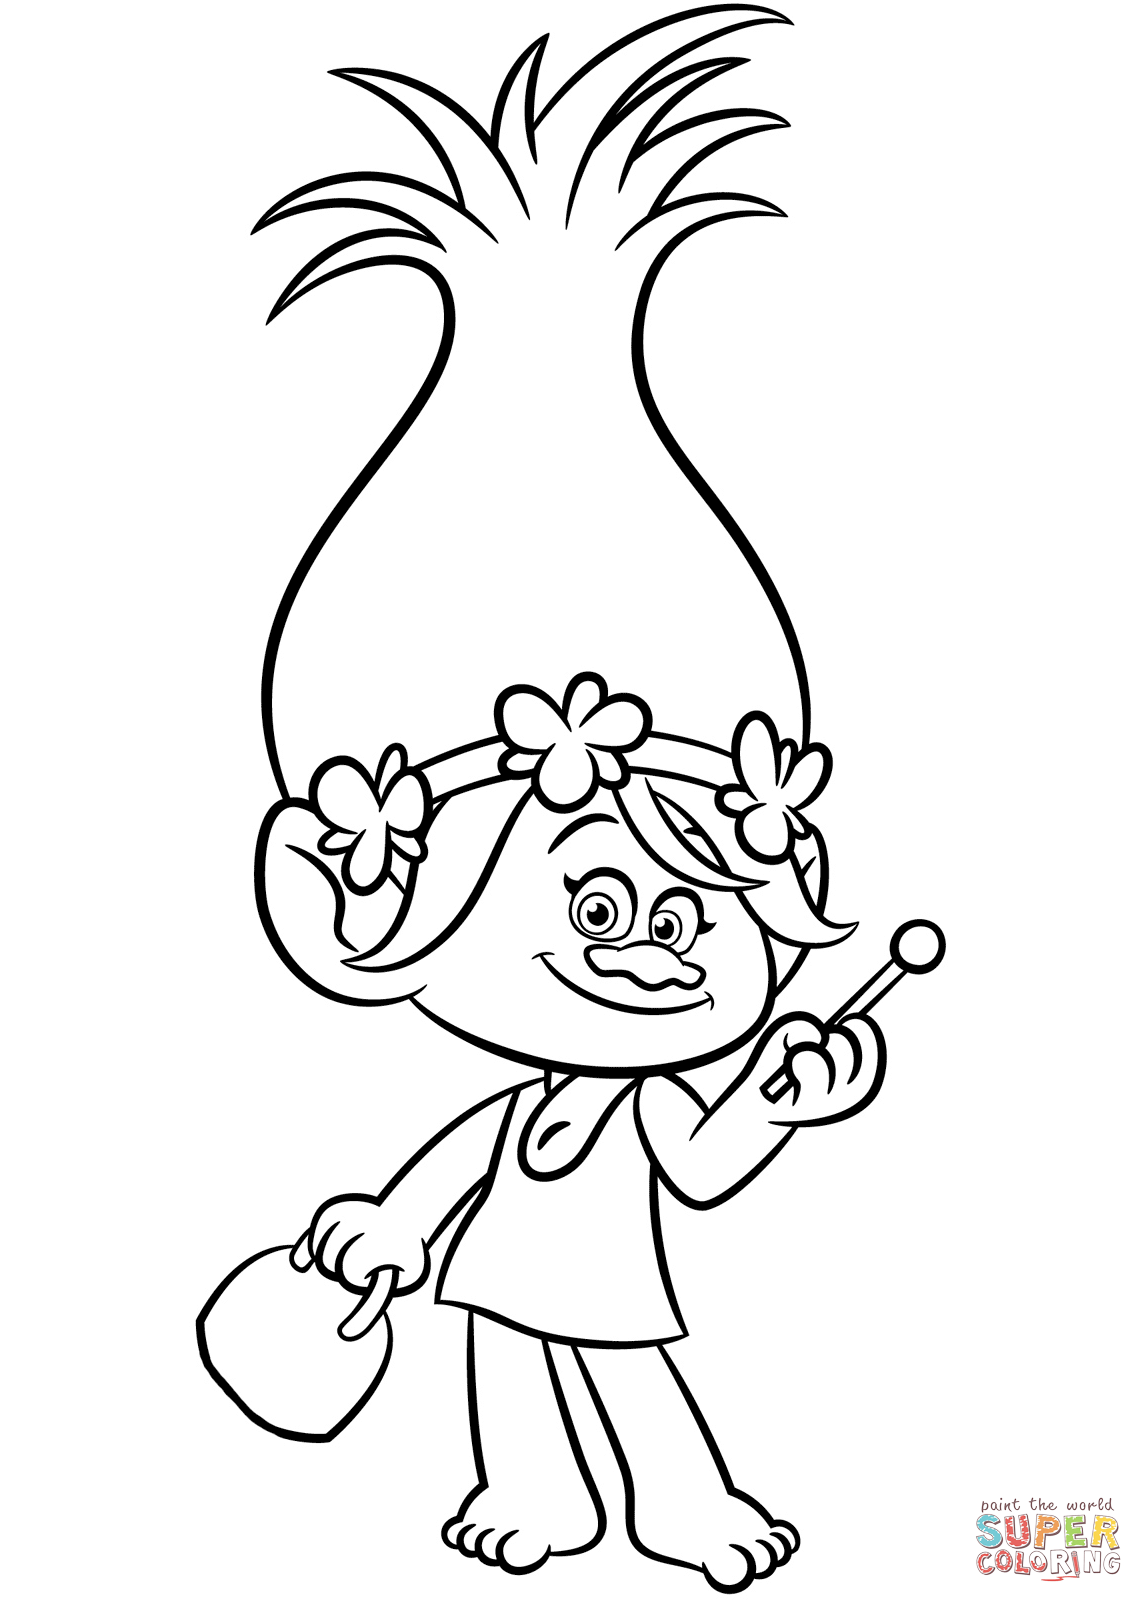 Related Image Poppy Coloring Page Free Printable Coloring Pages Free Coloring Pages